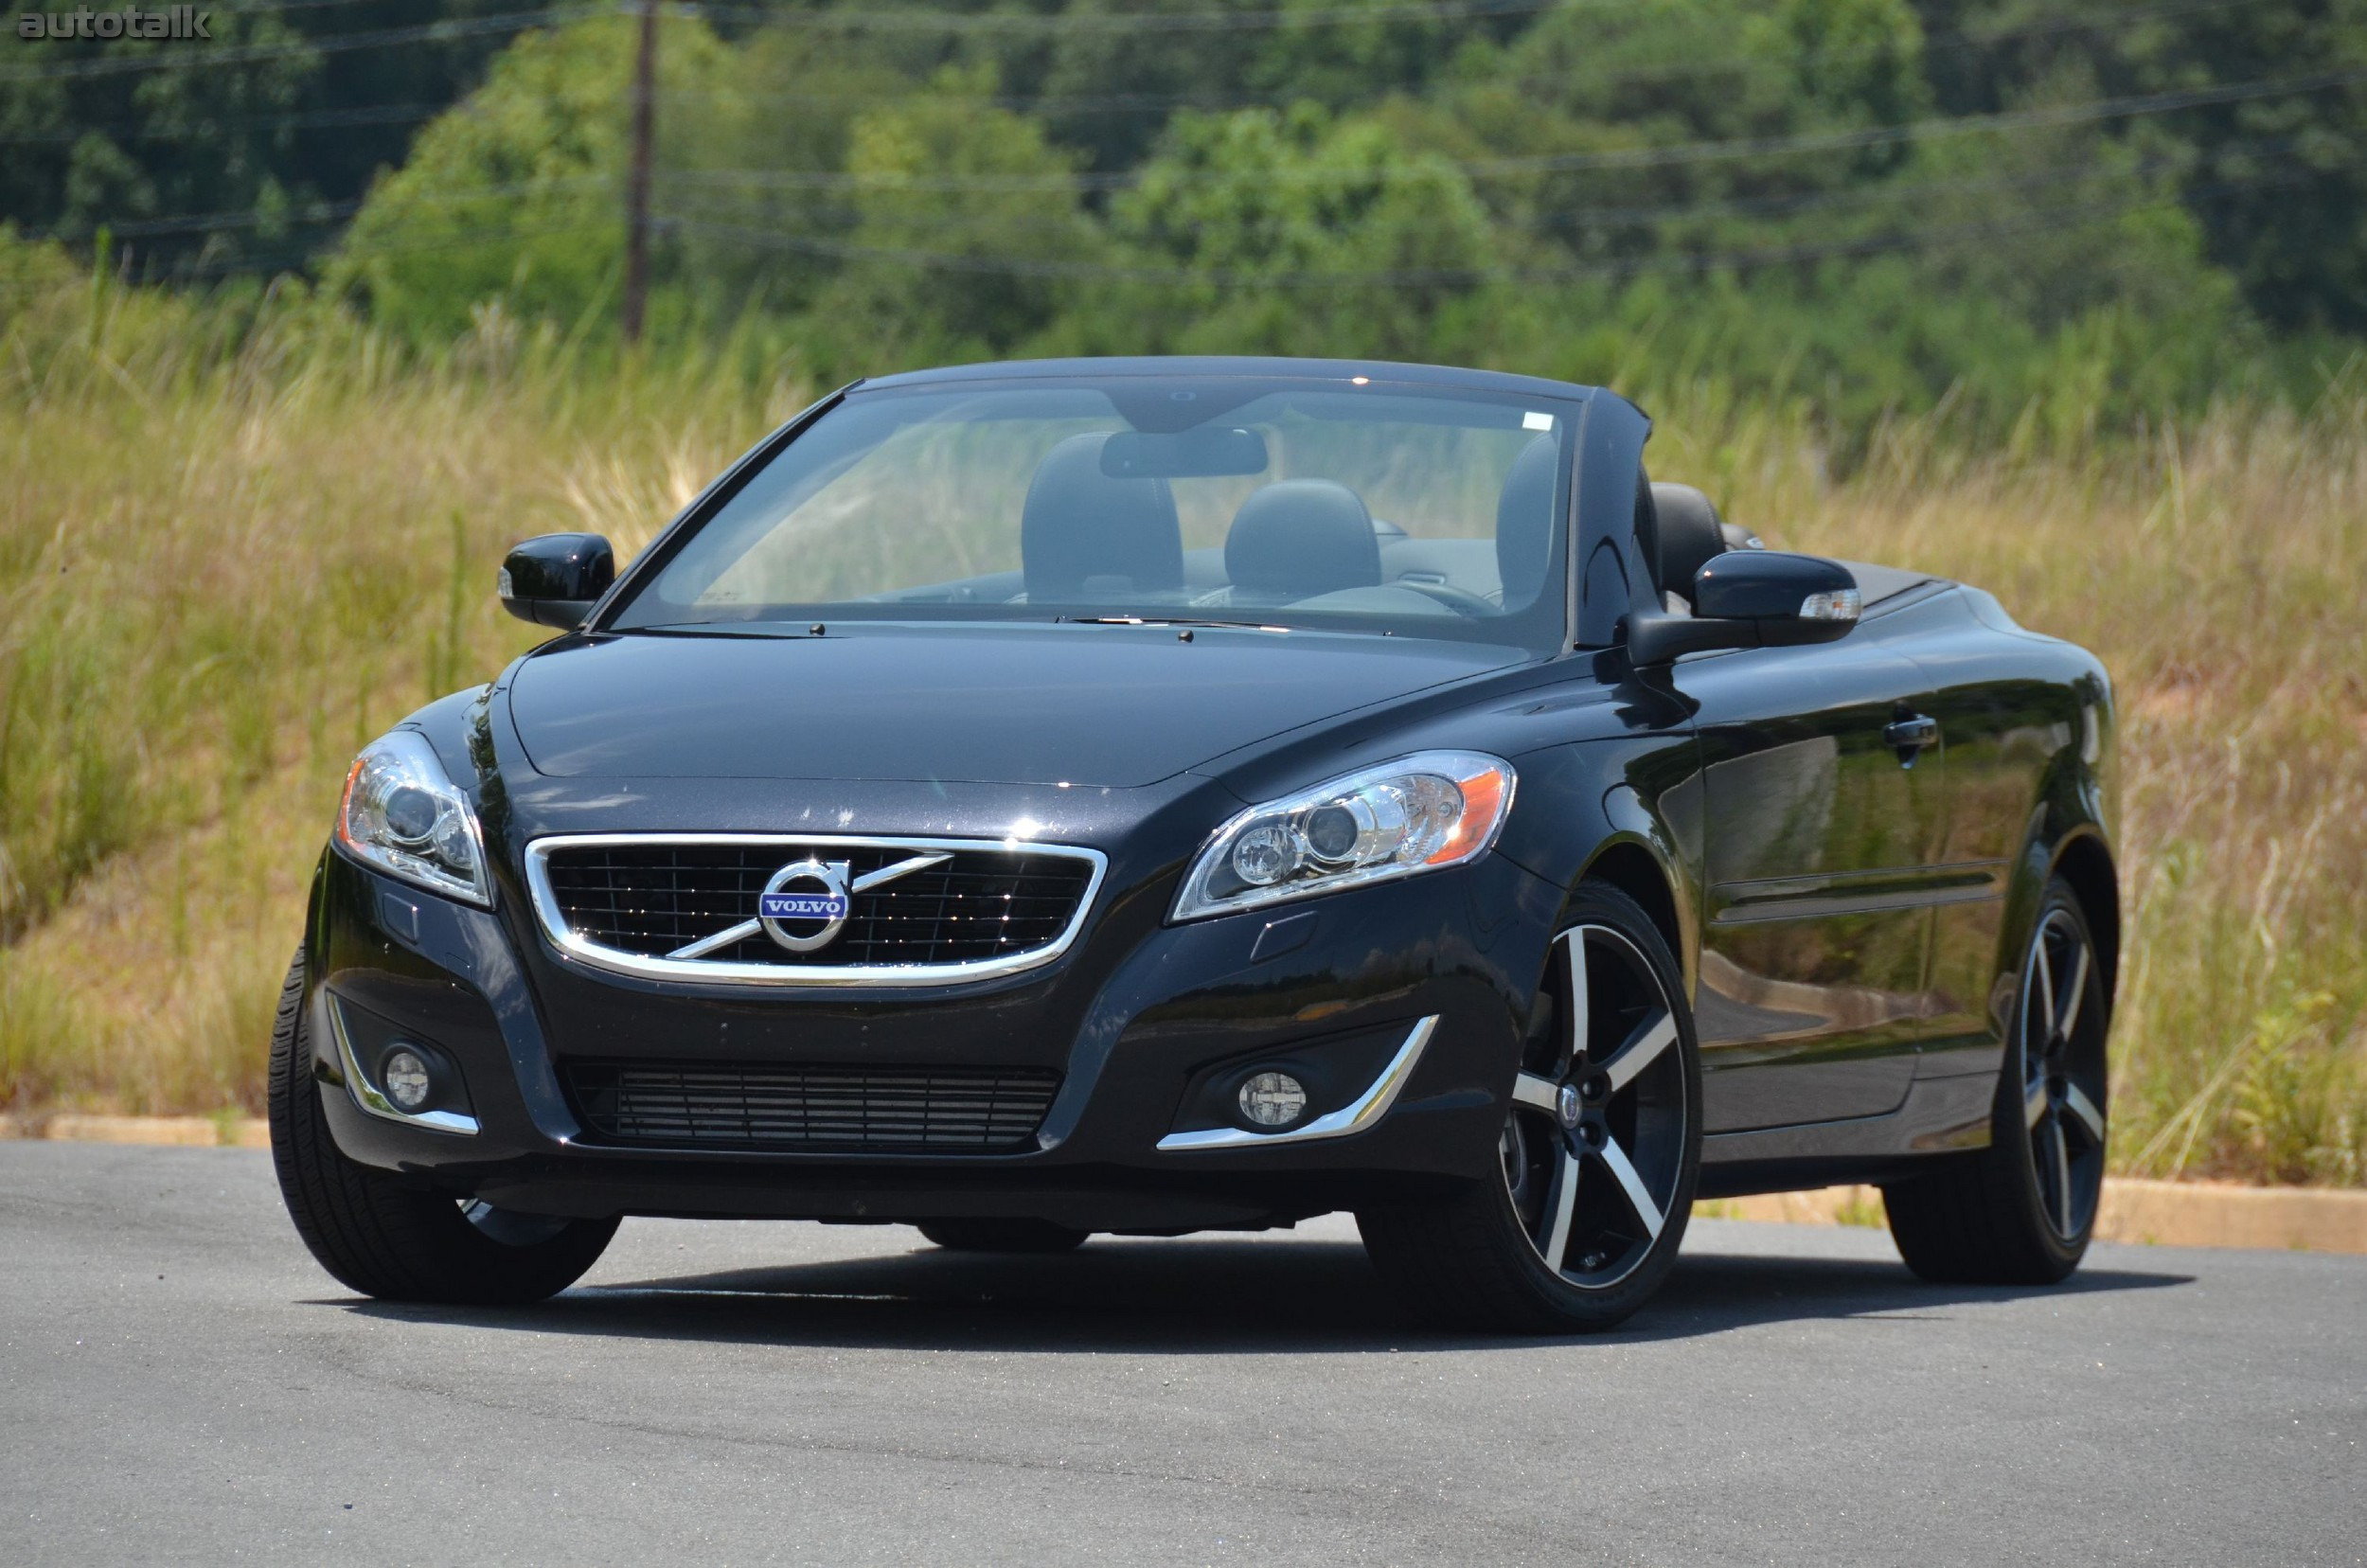 2012 volvo c70 convertible review autotalk. Black Bedroom Furniture Sets. Home Design Ideas